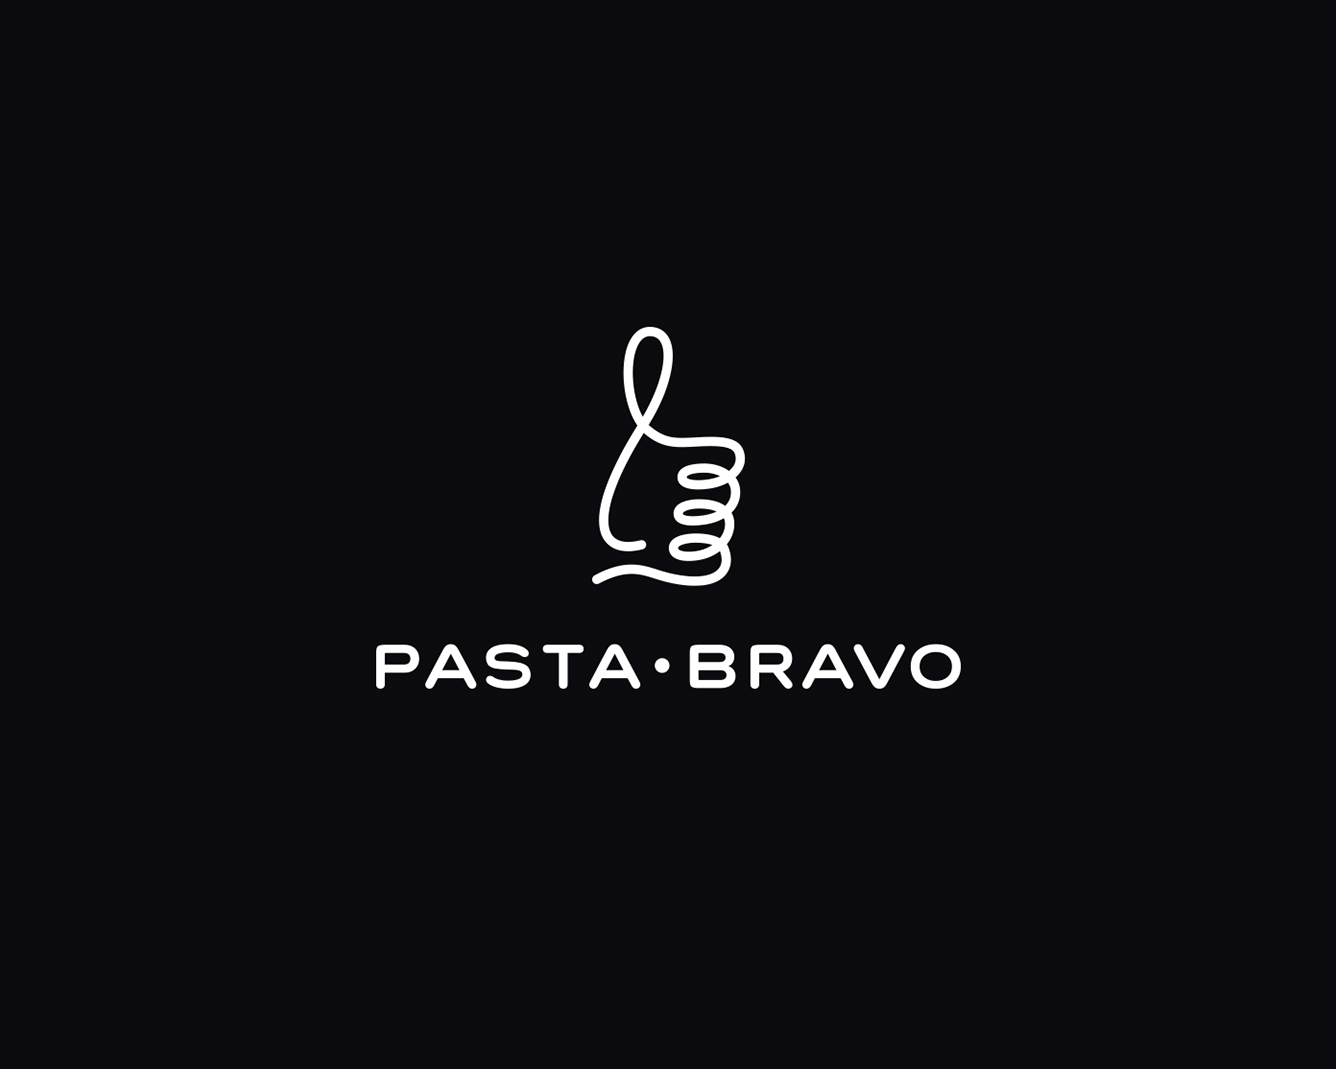 Designer creates logos with hidden meanings - 10